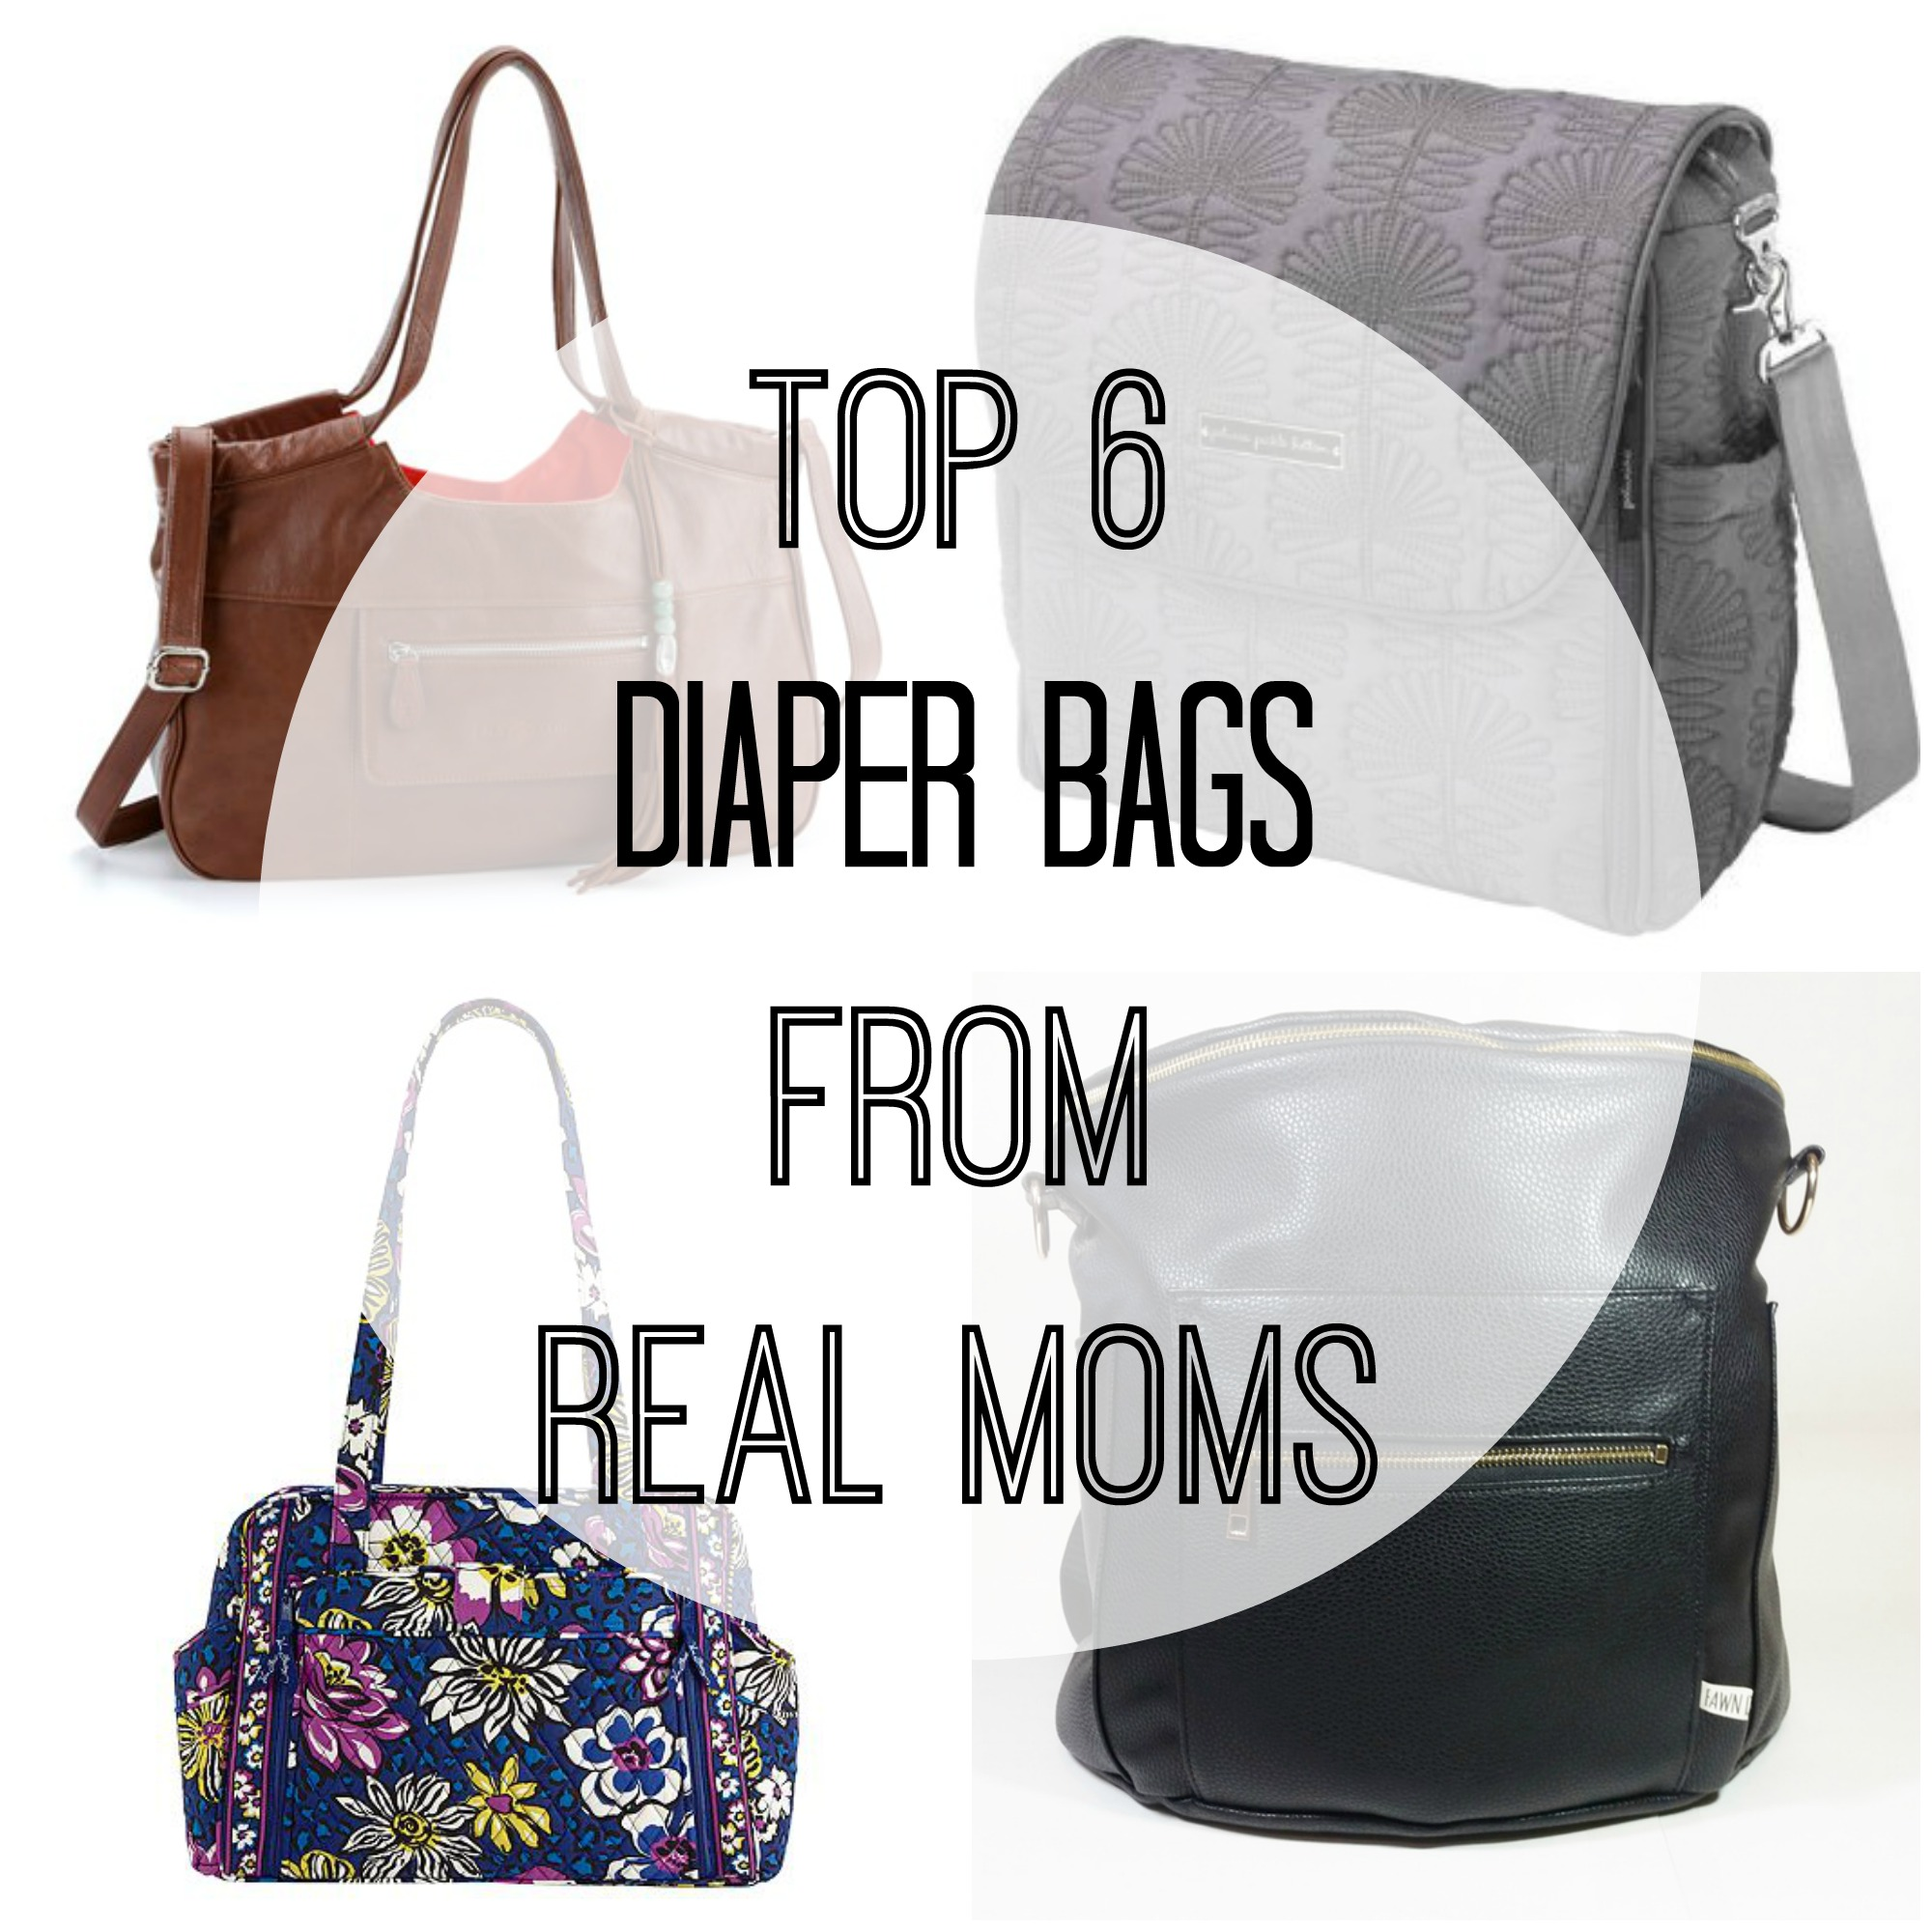 Top 6 Diaper Bags from Real Moms